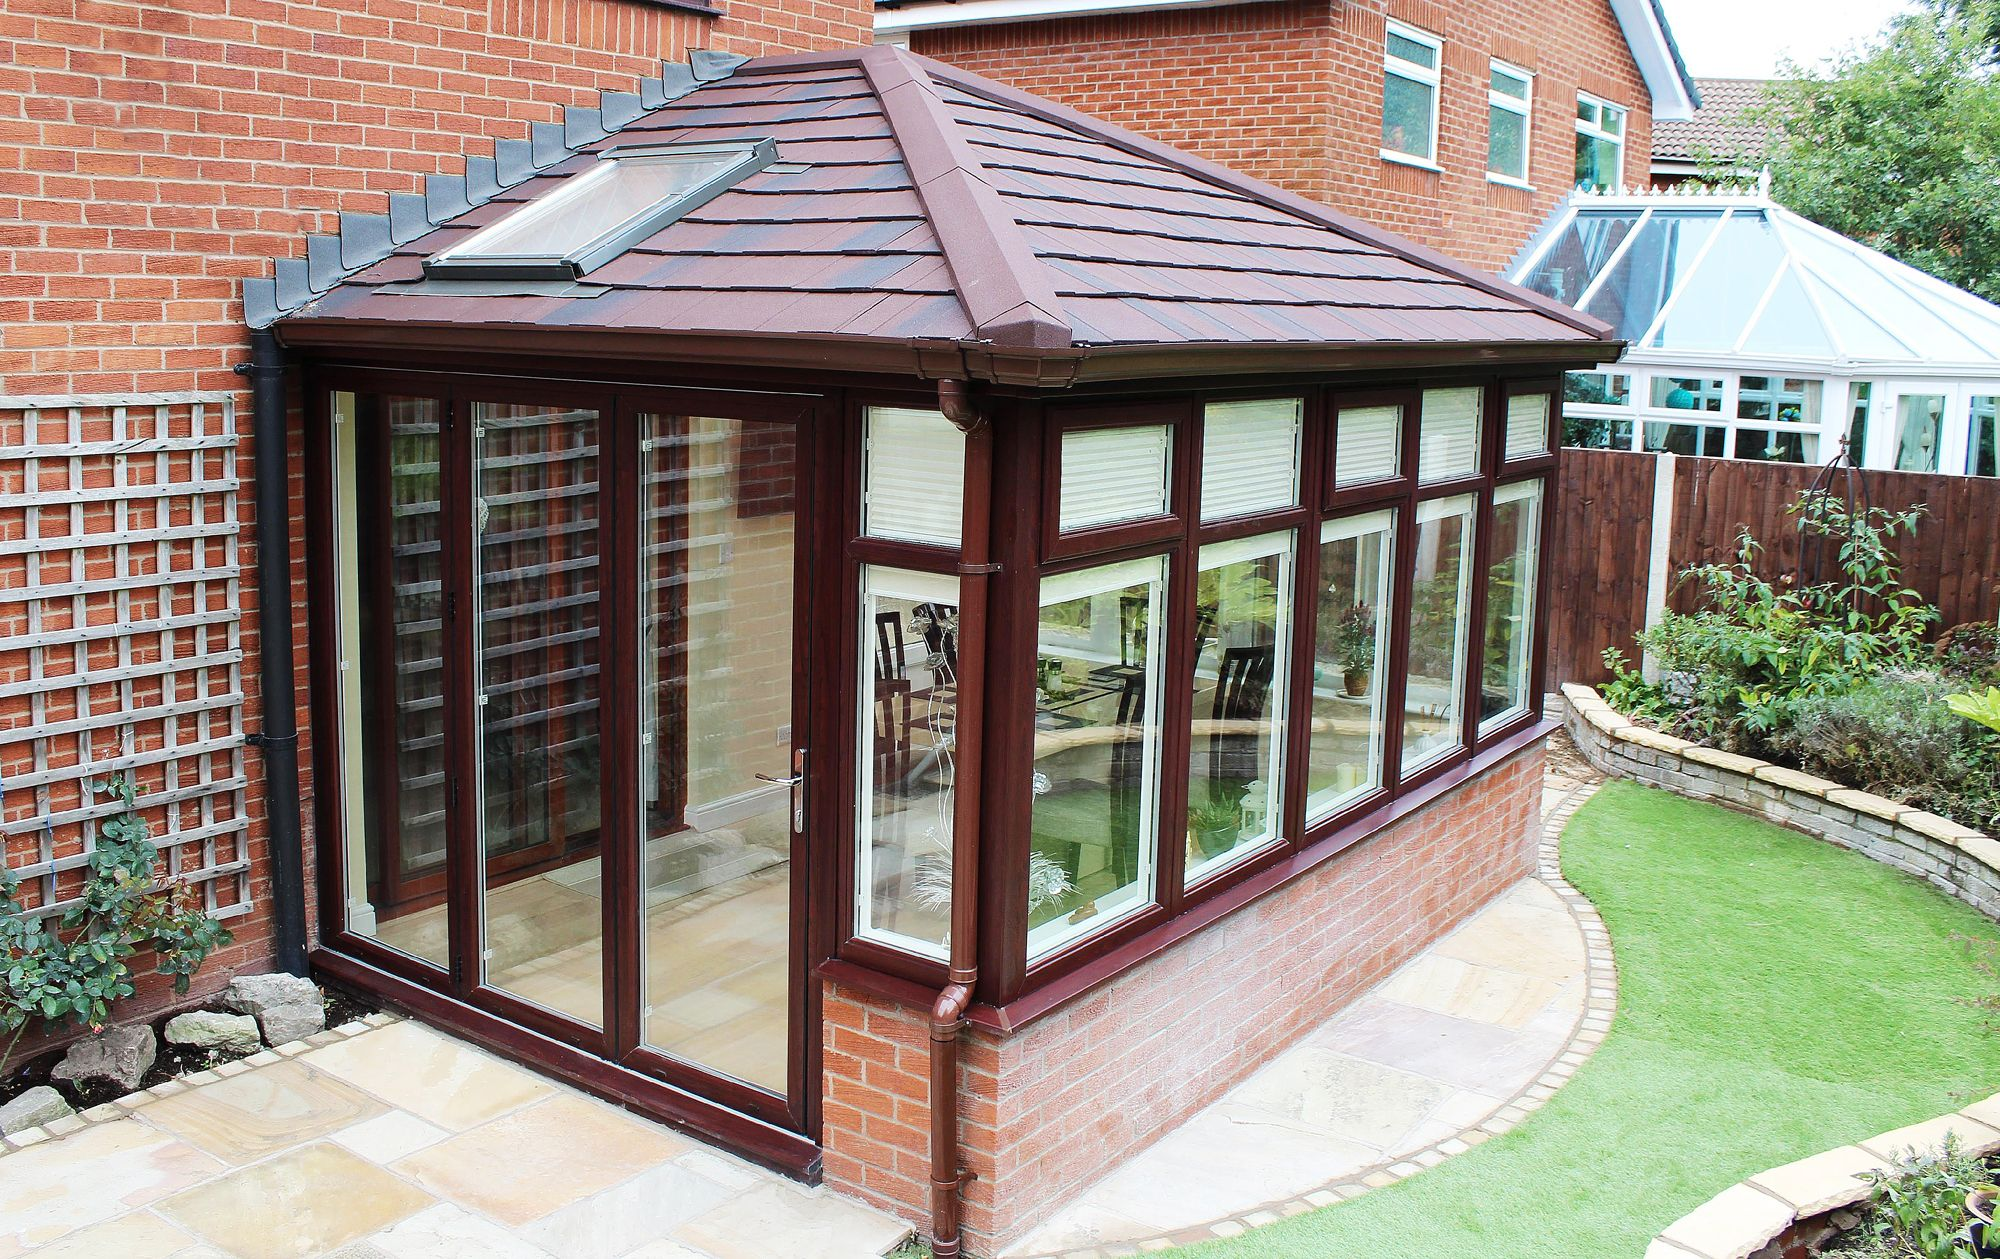 Supalite Roofing A Fantastic Light Weight Solution Offering A Solid Tiled Effect Roofi Tiled Conservatory Roof Conservatory Roof Replacement Conservatory Roof